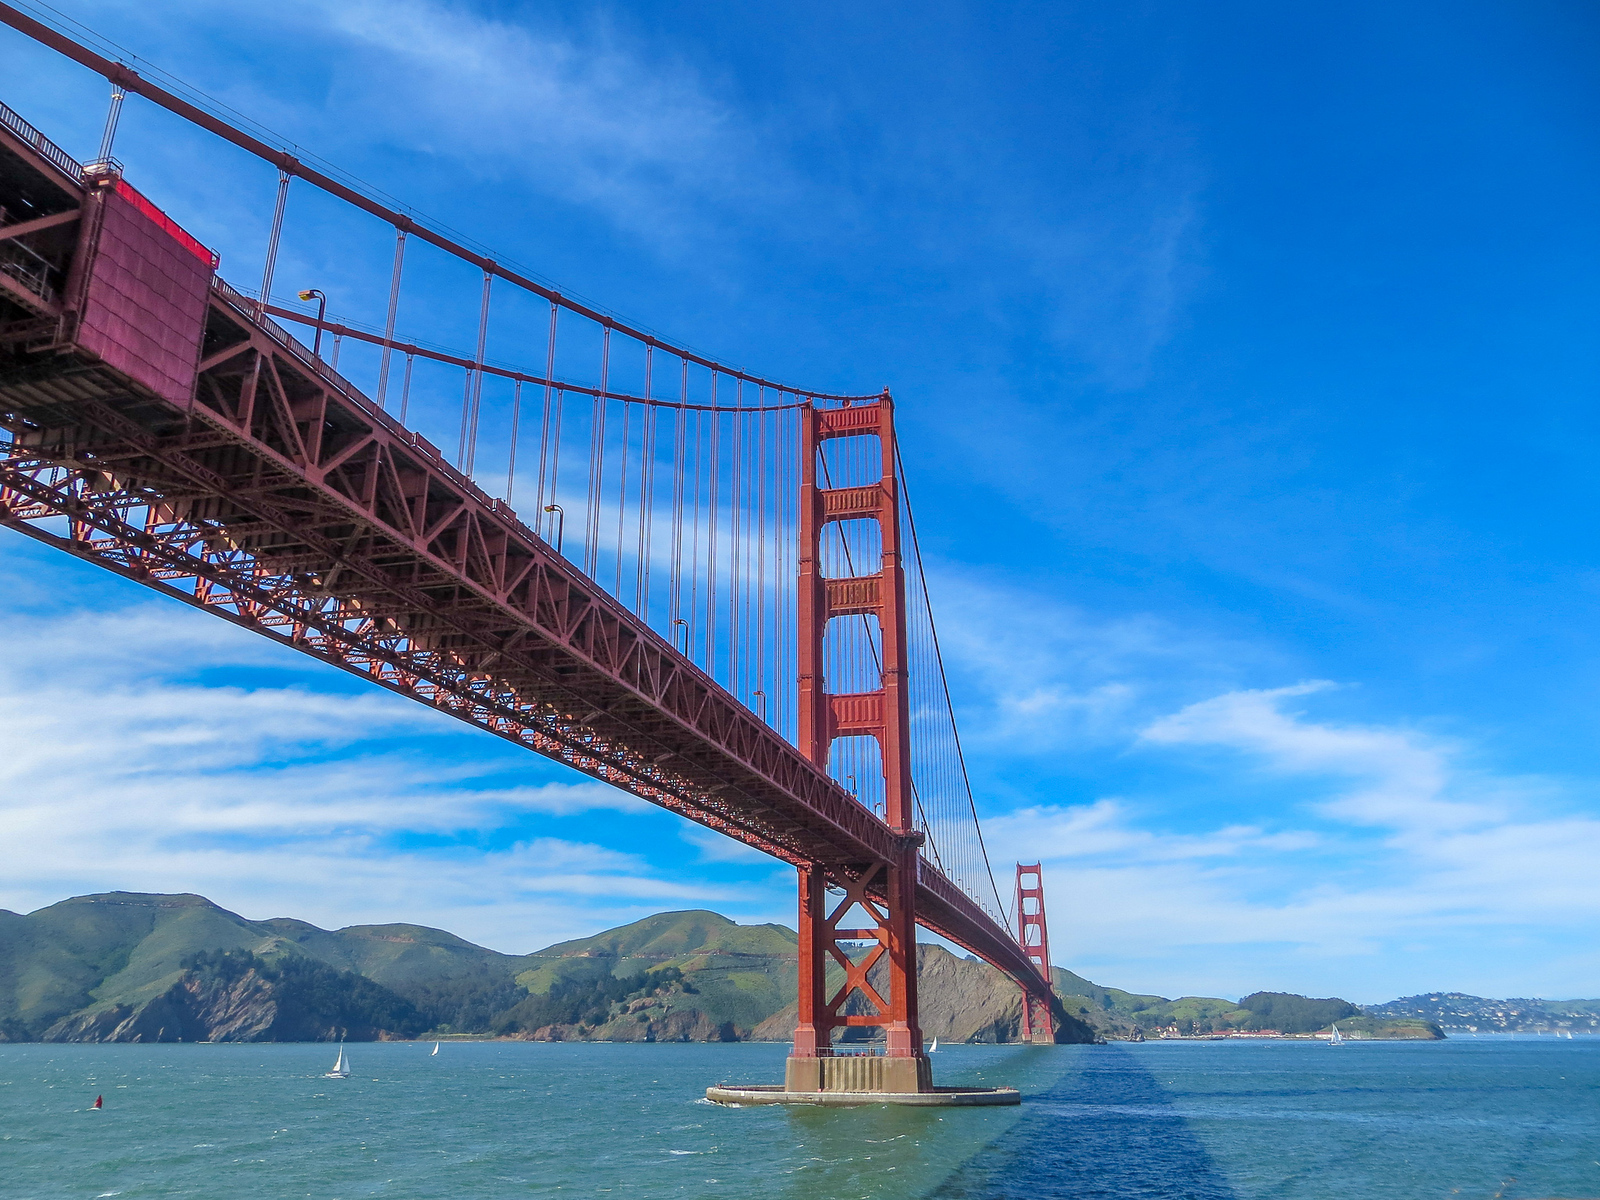 bring good shoes for your san francisco packing list so you can walk across the golden gate bridge